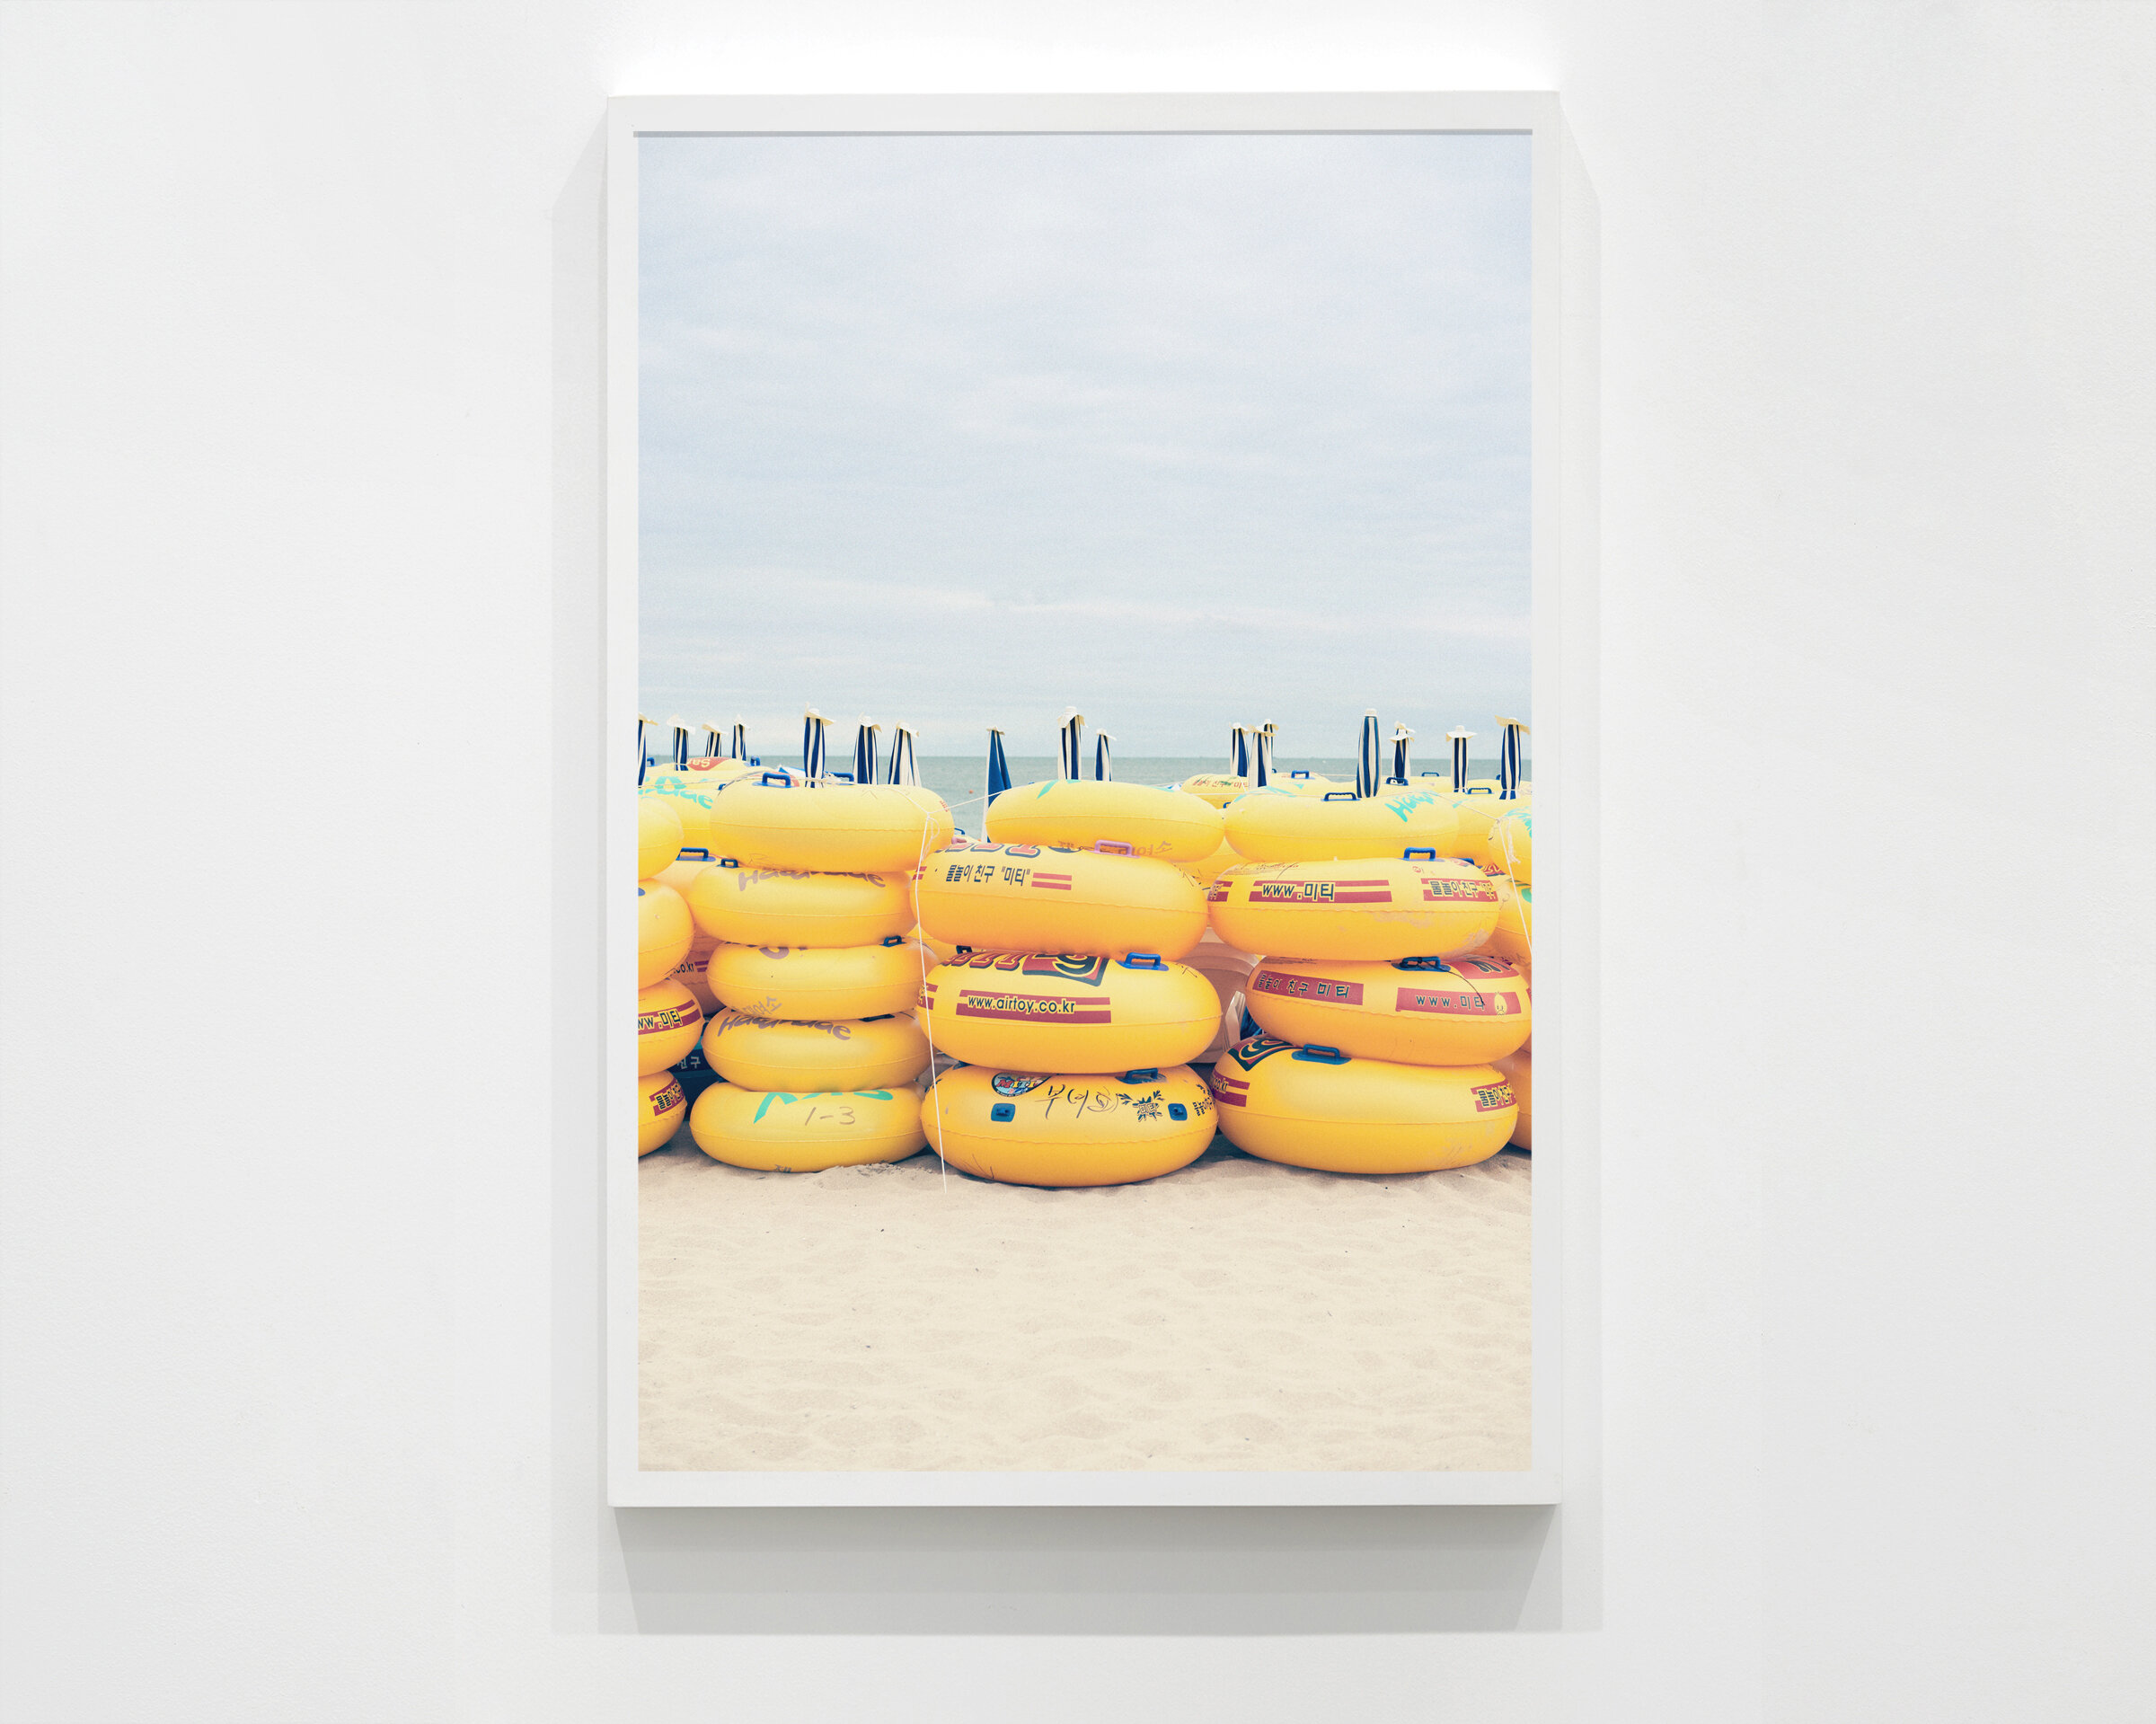 Pacific Distance (Busan #1), 2009  36 x 24 in (91.44 x 60.96 cm)